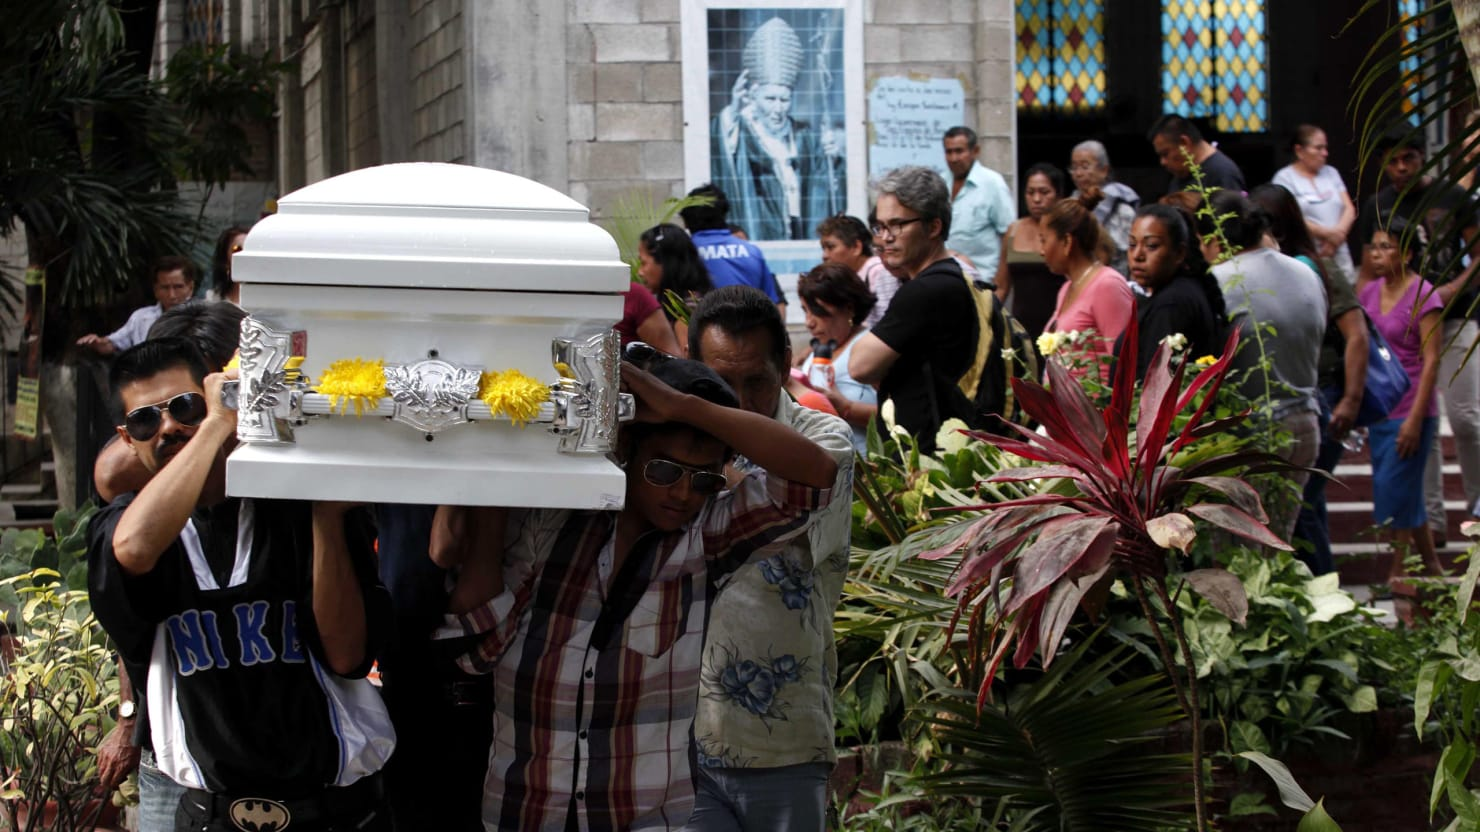 Mexican activist murdered while walking in funeral procession izmirmasajfo